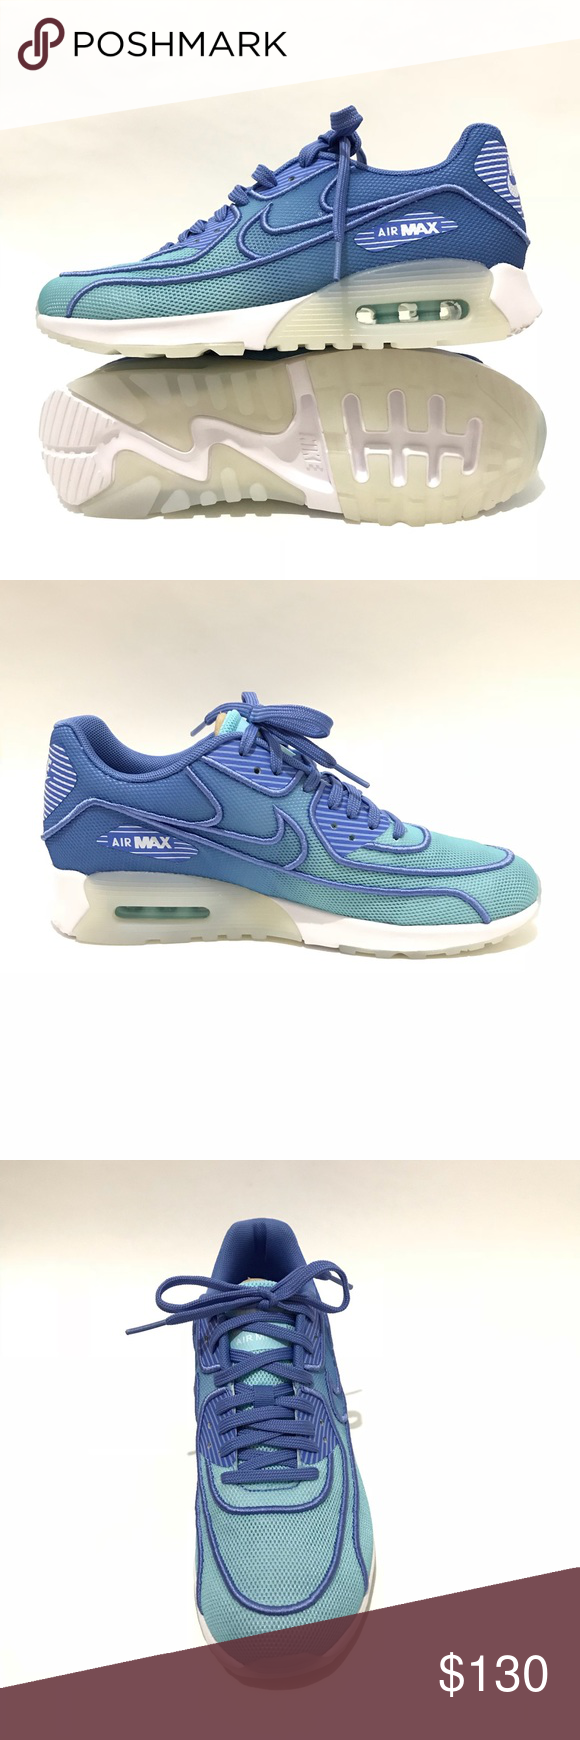 low priced 24039 83d27 Nike Air Max 90 Ultra 2.0 Breathe Polarize Blue BRAND NEW, NO BOX, NEVER